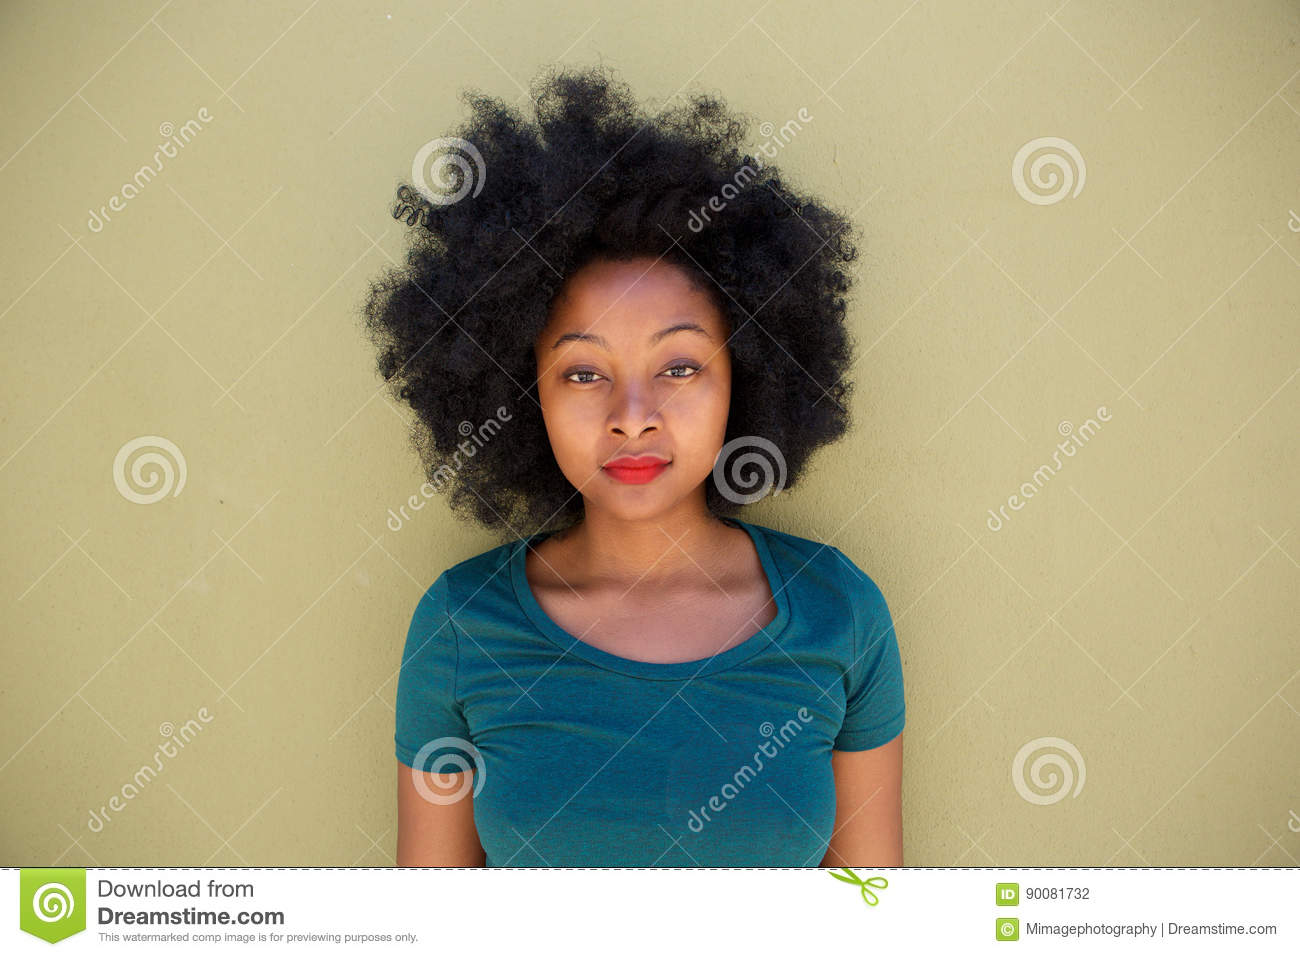 Beautiful serious young black woman standing by wall